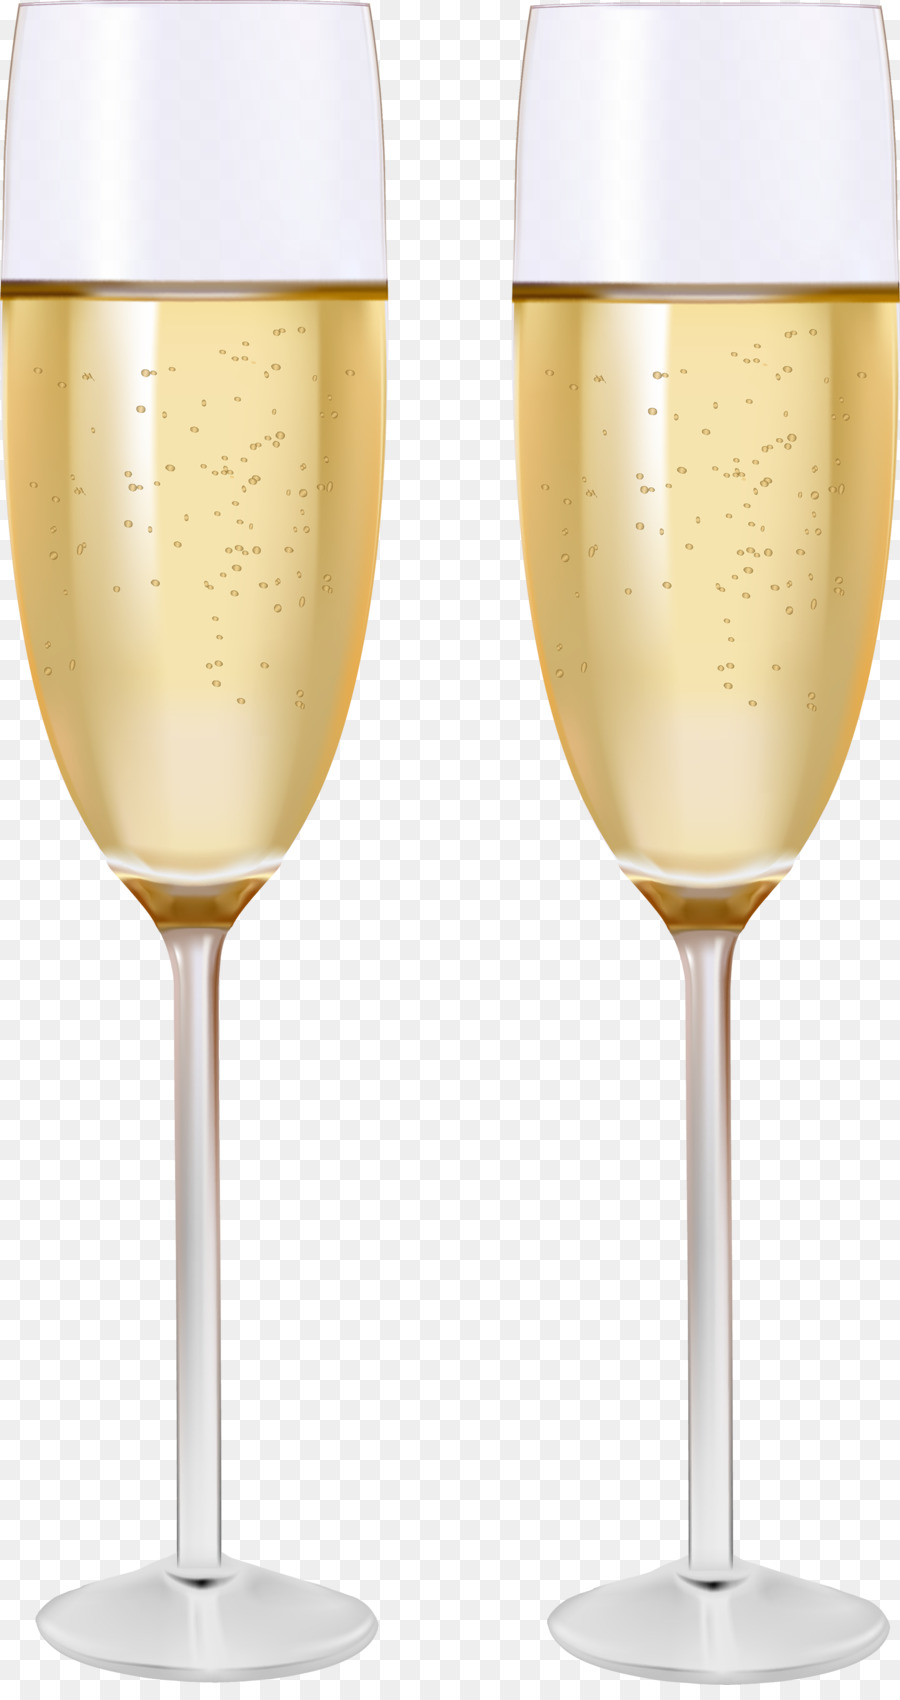 Stemware clipart picture royalty free Wine Glass clipart - Champagne, Wine, Glass, transparent ... picture royalty free